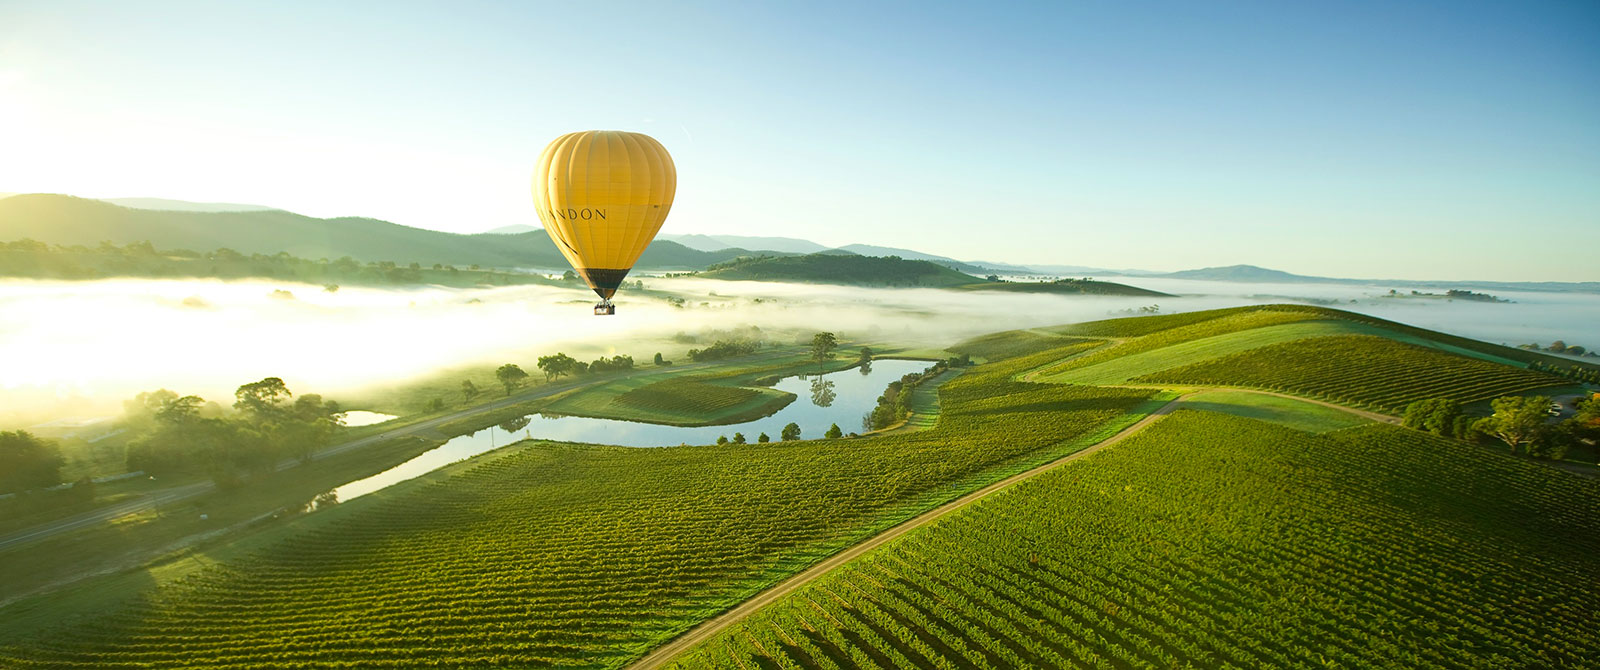 Hot Air Balloon Over Yarra Valley Wine Region